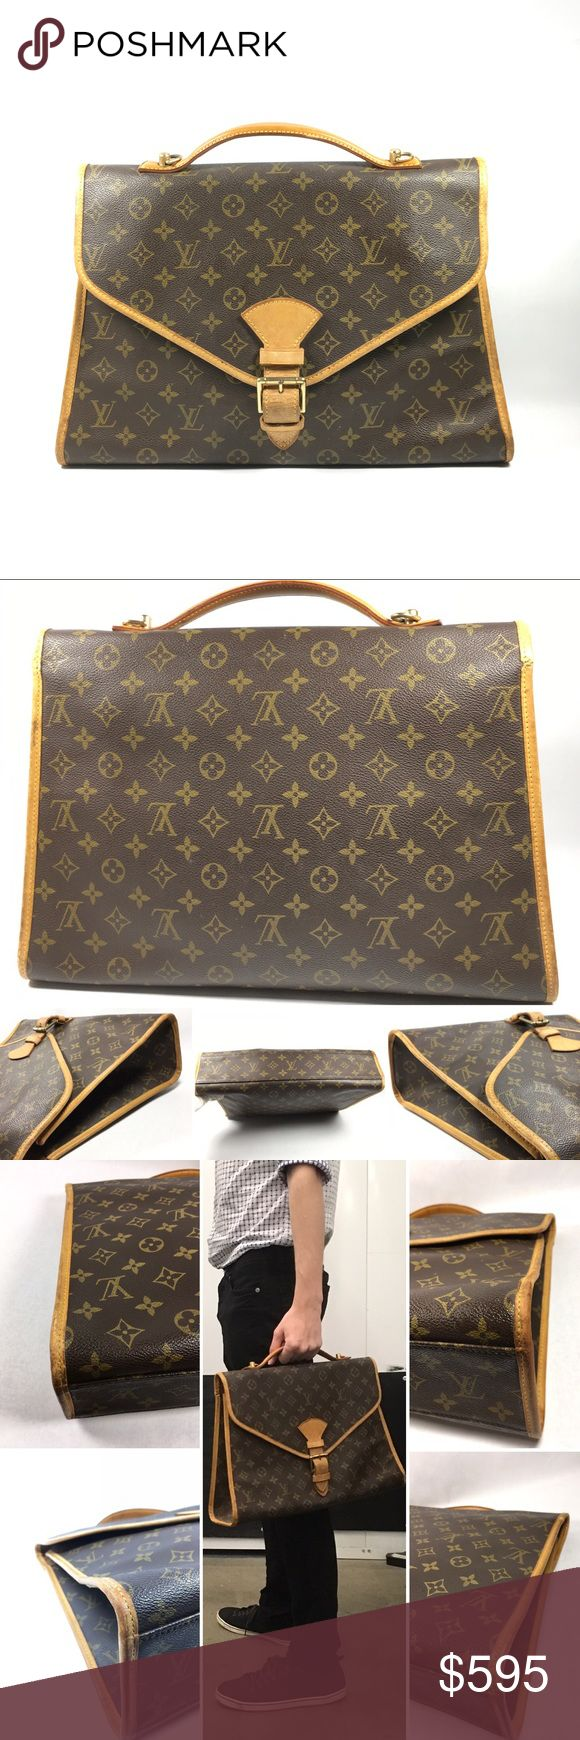 Authentic Louis Vuitton Briefcase No lowballing no trade. Made in France S#SL0923 Gently used vintage condition with some visible signs of use on the exterior  Monogram canvas shows white rub marks on some areas, light color fading. Leather trim/piping shows rubbing, patina & visible cracks. Patina, water marks, creases & rubbing on leather closure. Cracks near sizing hole. Hardware shows tarnishing.  Interior lining shows white stains at the bottom, snags and creases. Leather trim has…